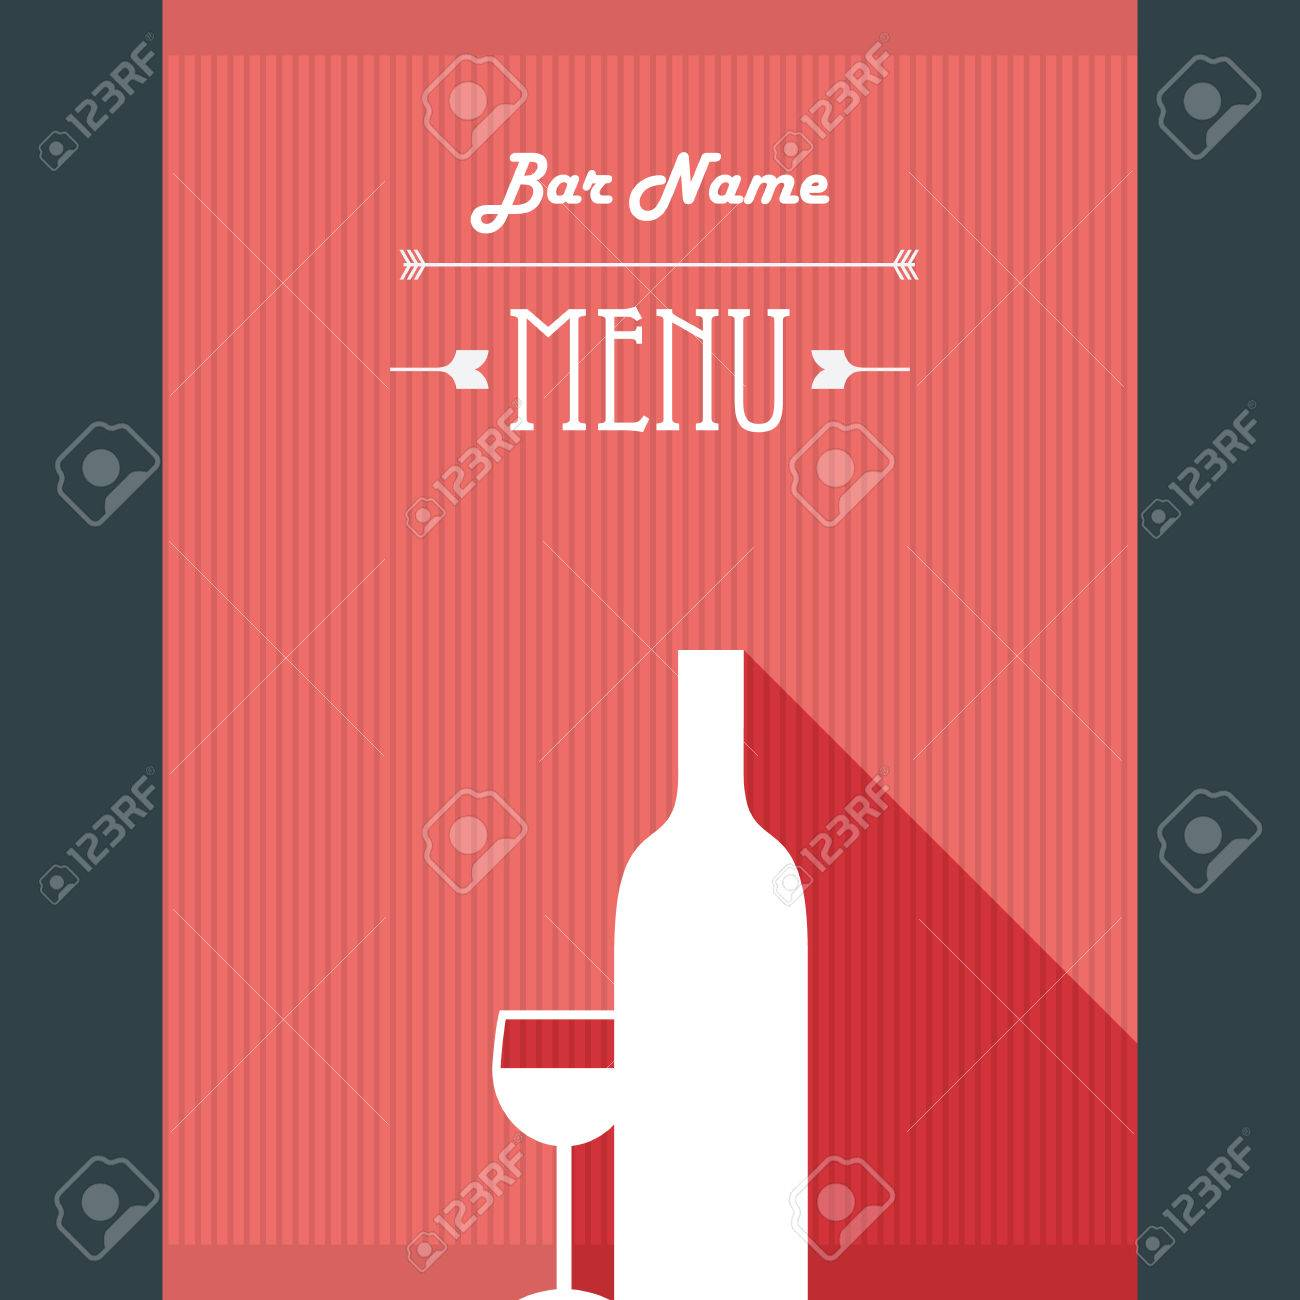 Alcohol Drinks Restaurant Menu Template. Wine Bar Background With Glass And  Bottle. Eps10 Vector